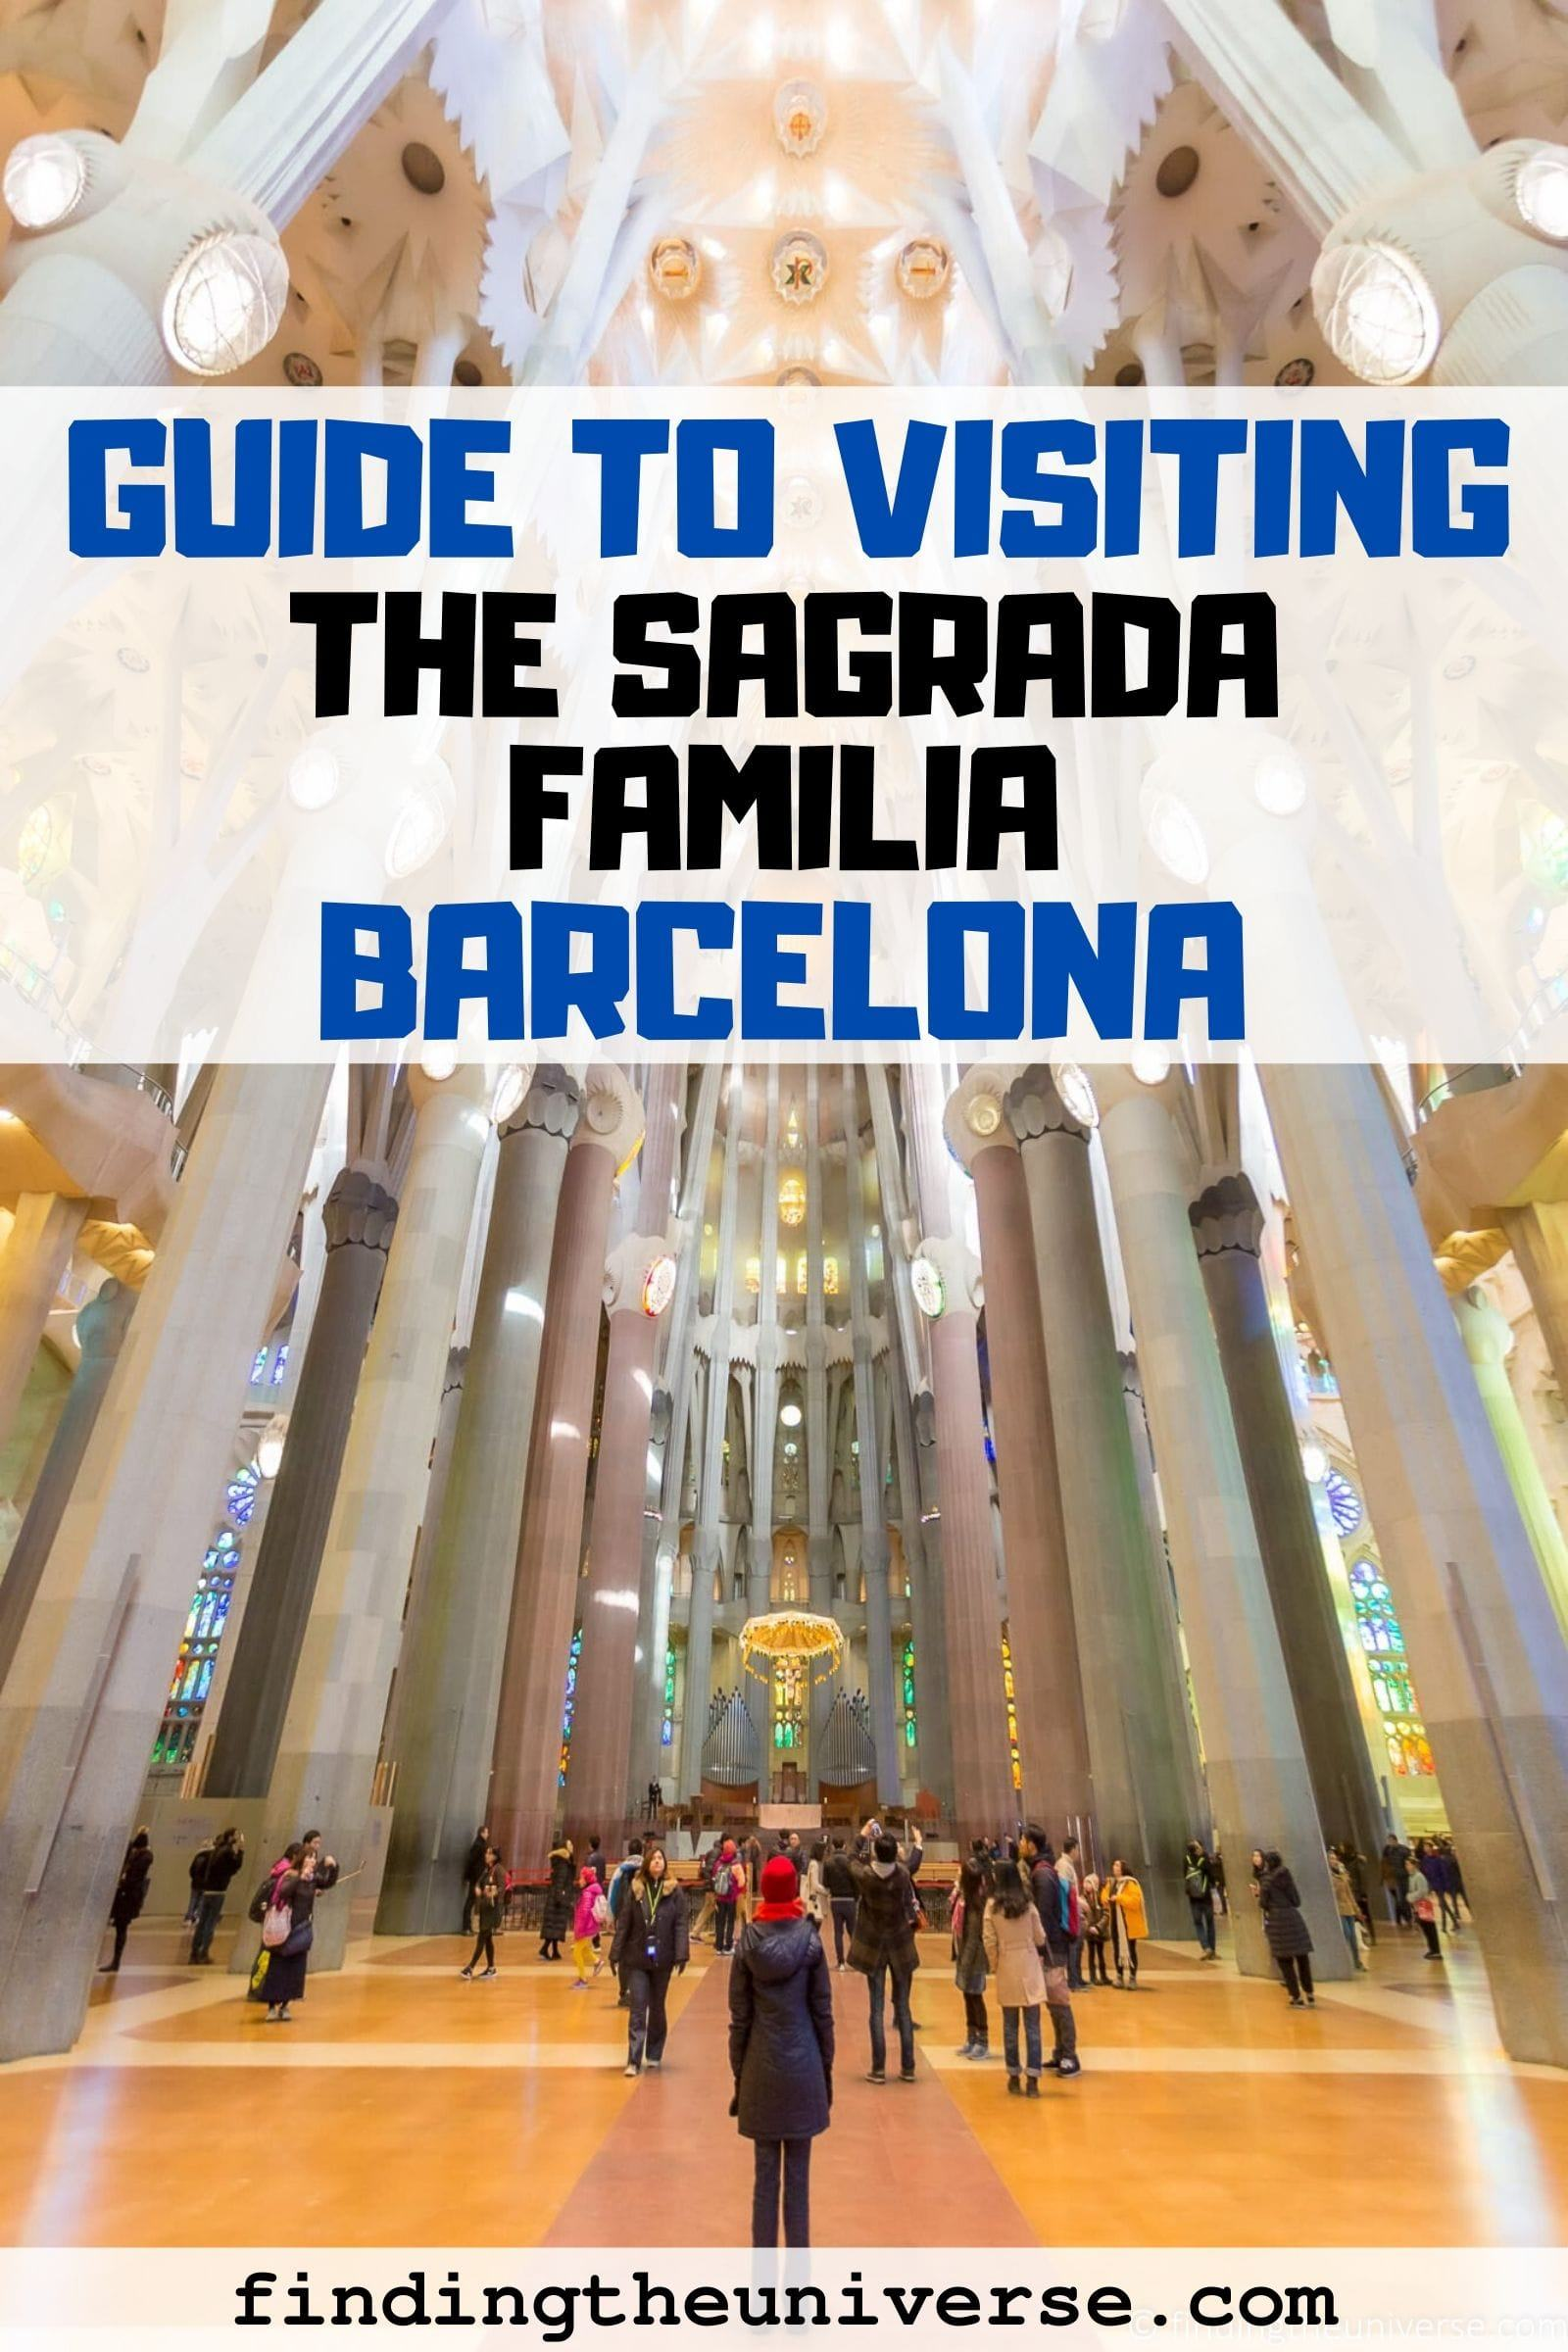 A detailed guide to help you plan a visit to the Sagrada Familia. Tips on where to get Sagrada Familia tickets, which tower is best, what to expect, and lots more!